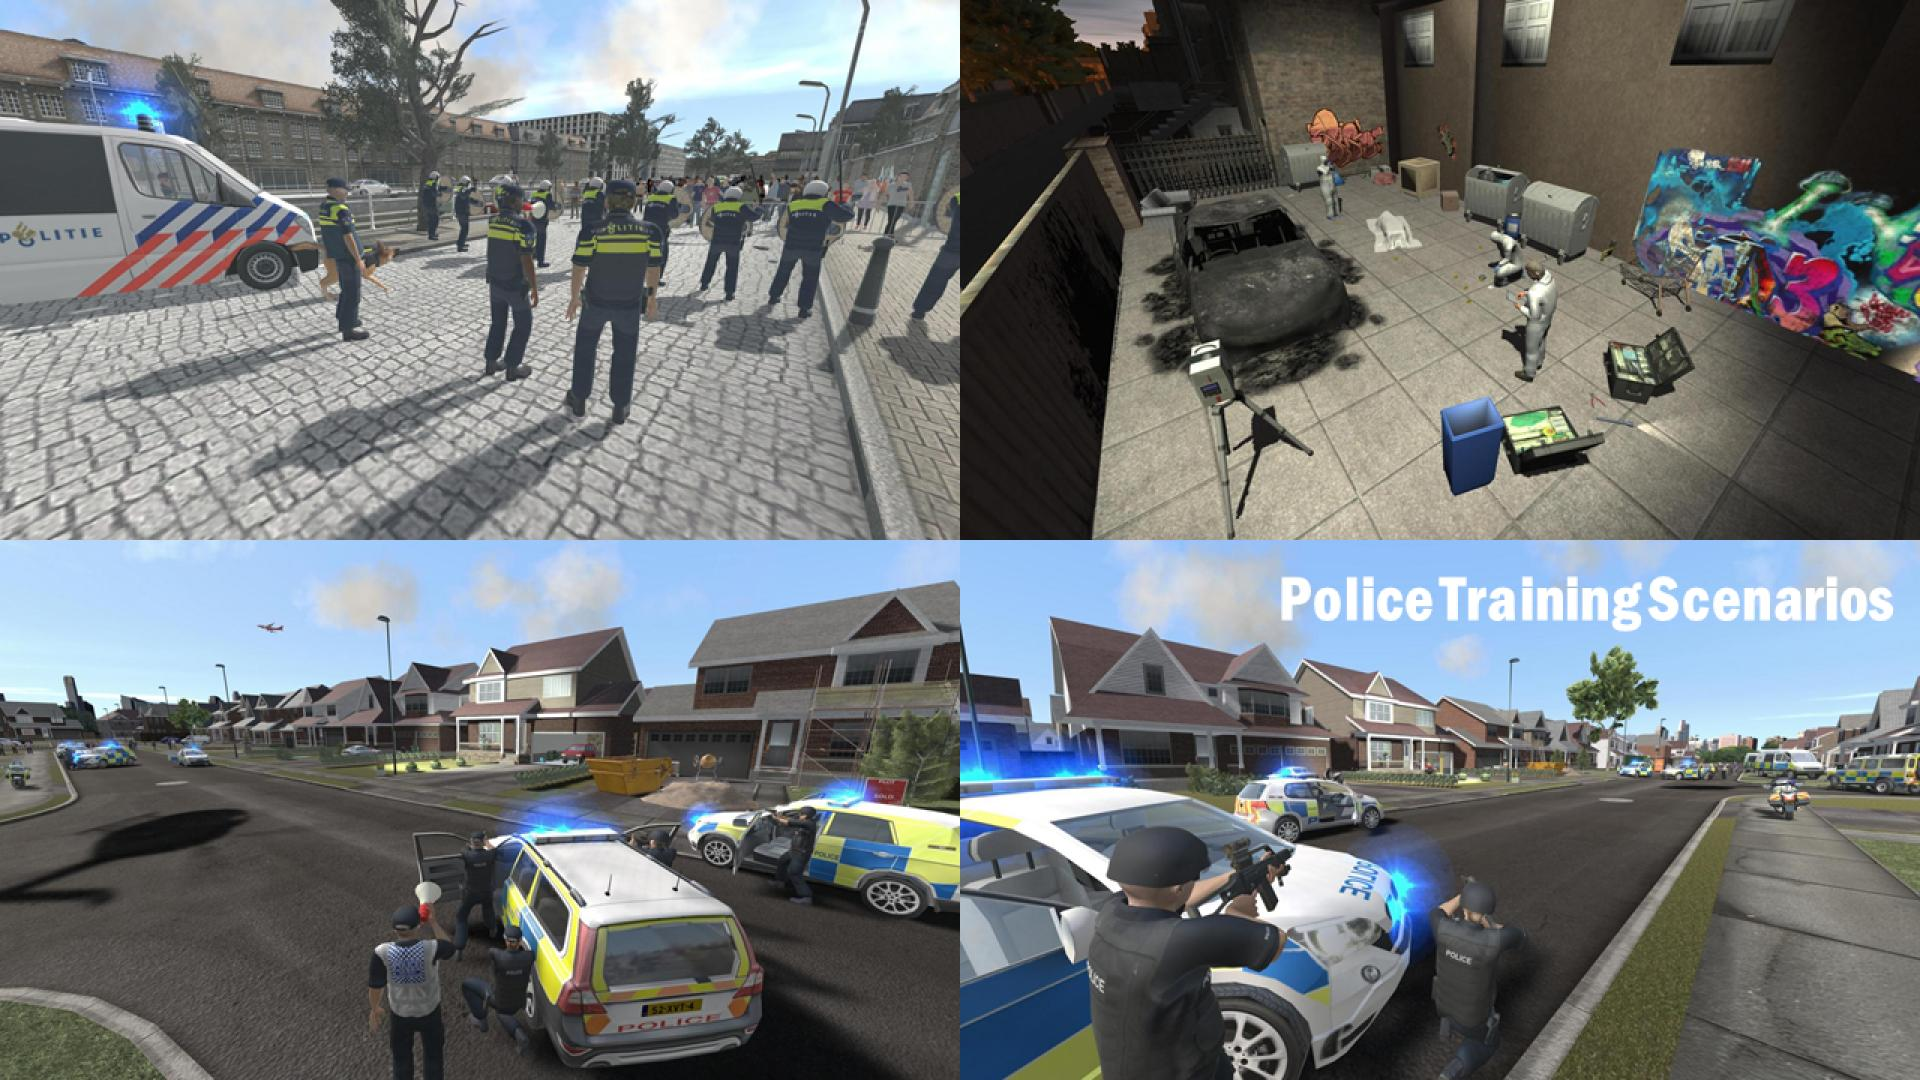 Screenshots of police training scenes